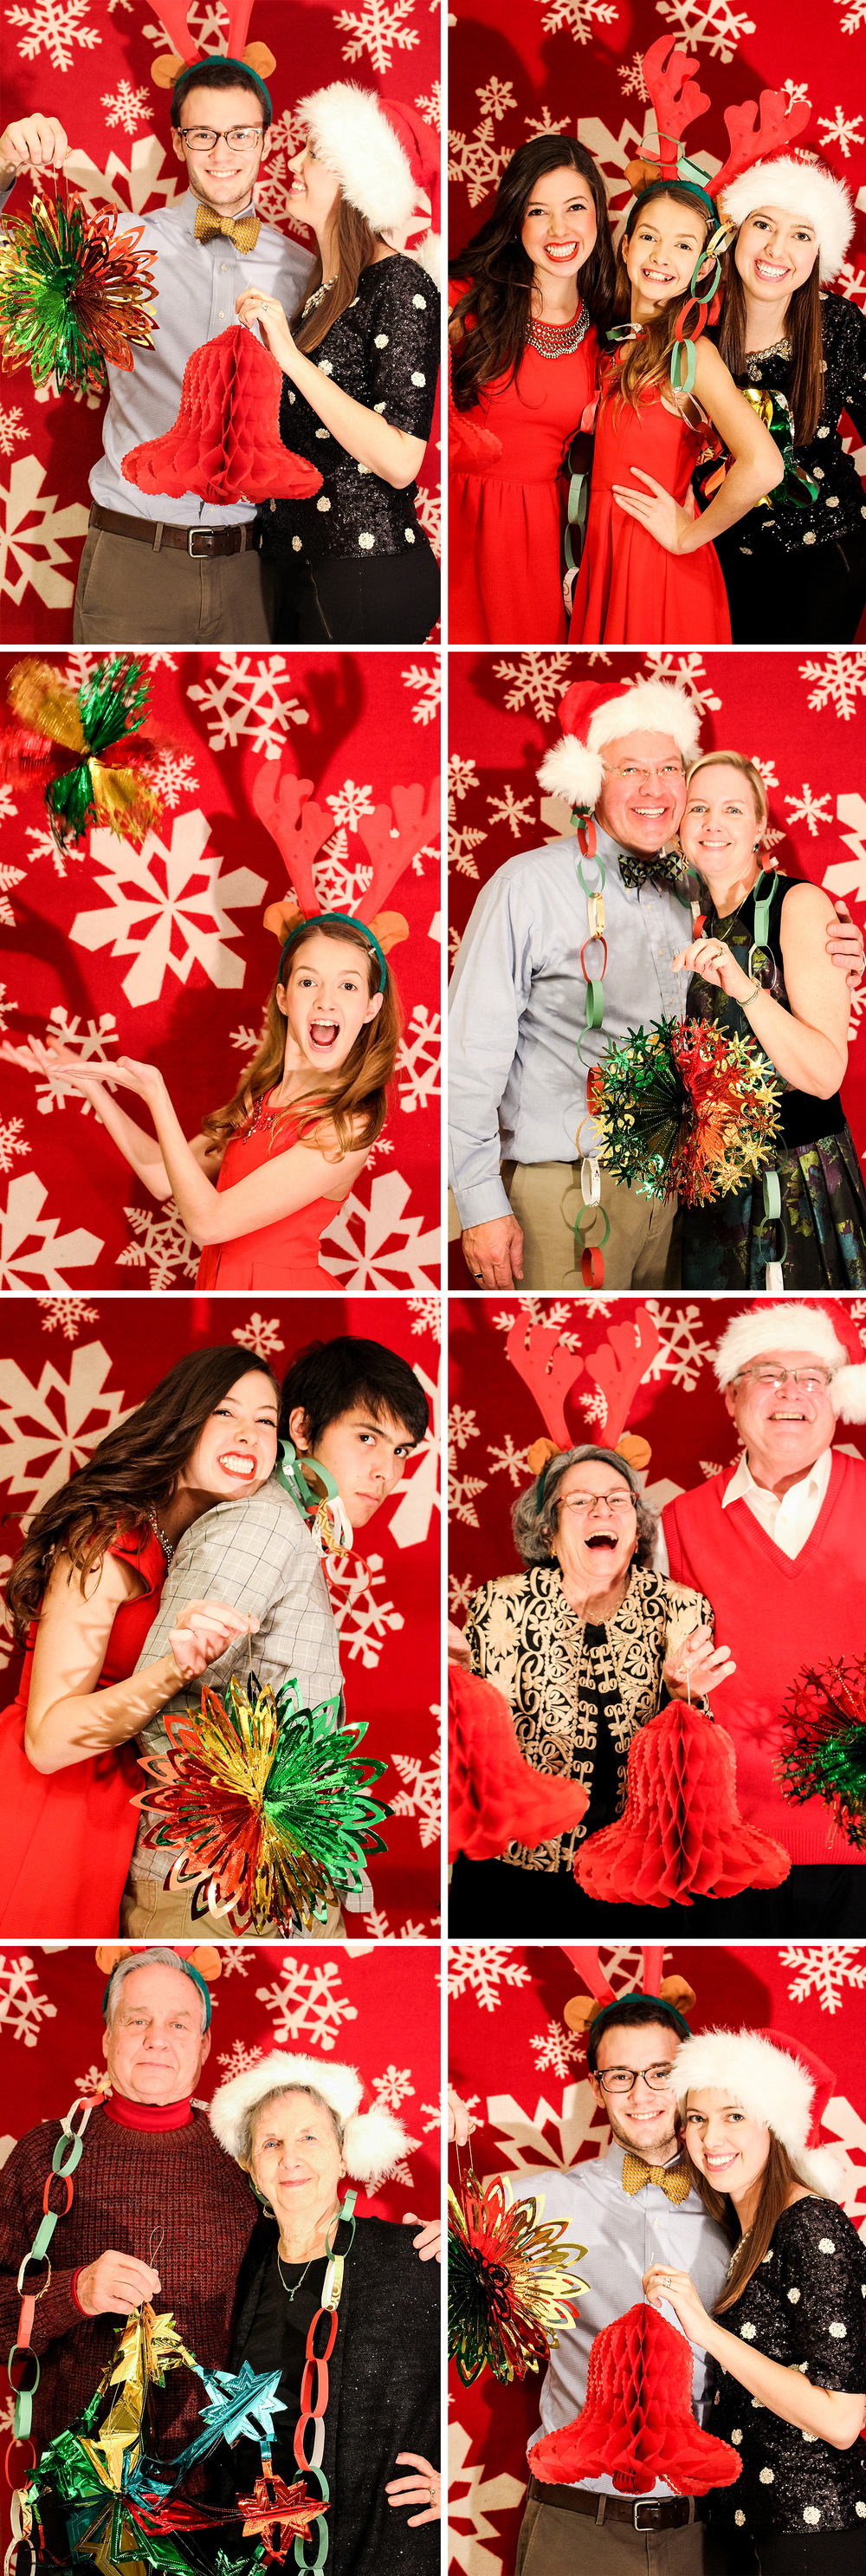 Letters Are Lovely | Christmas Eve Photo Booth 2015